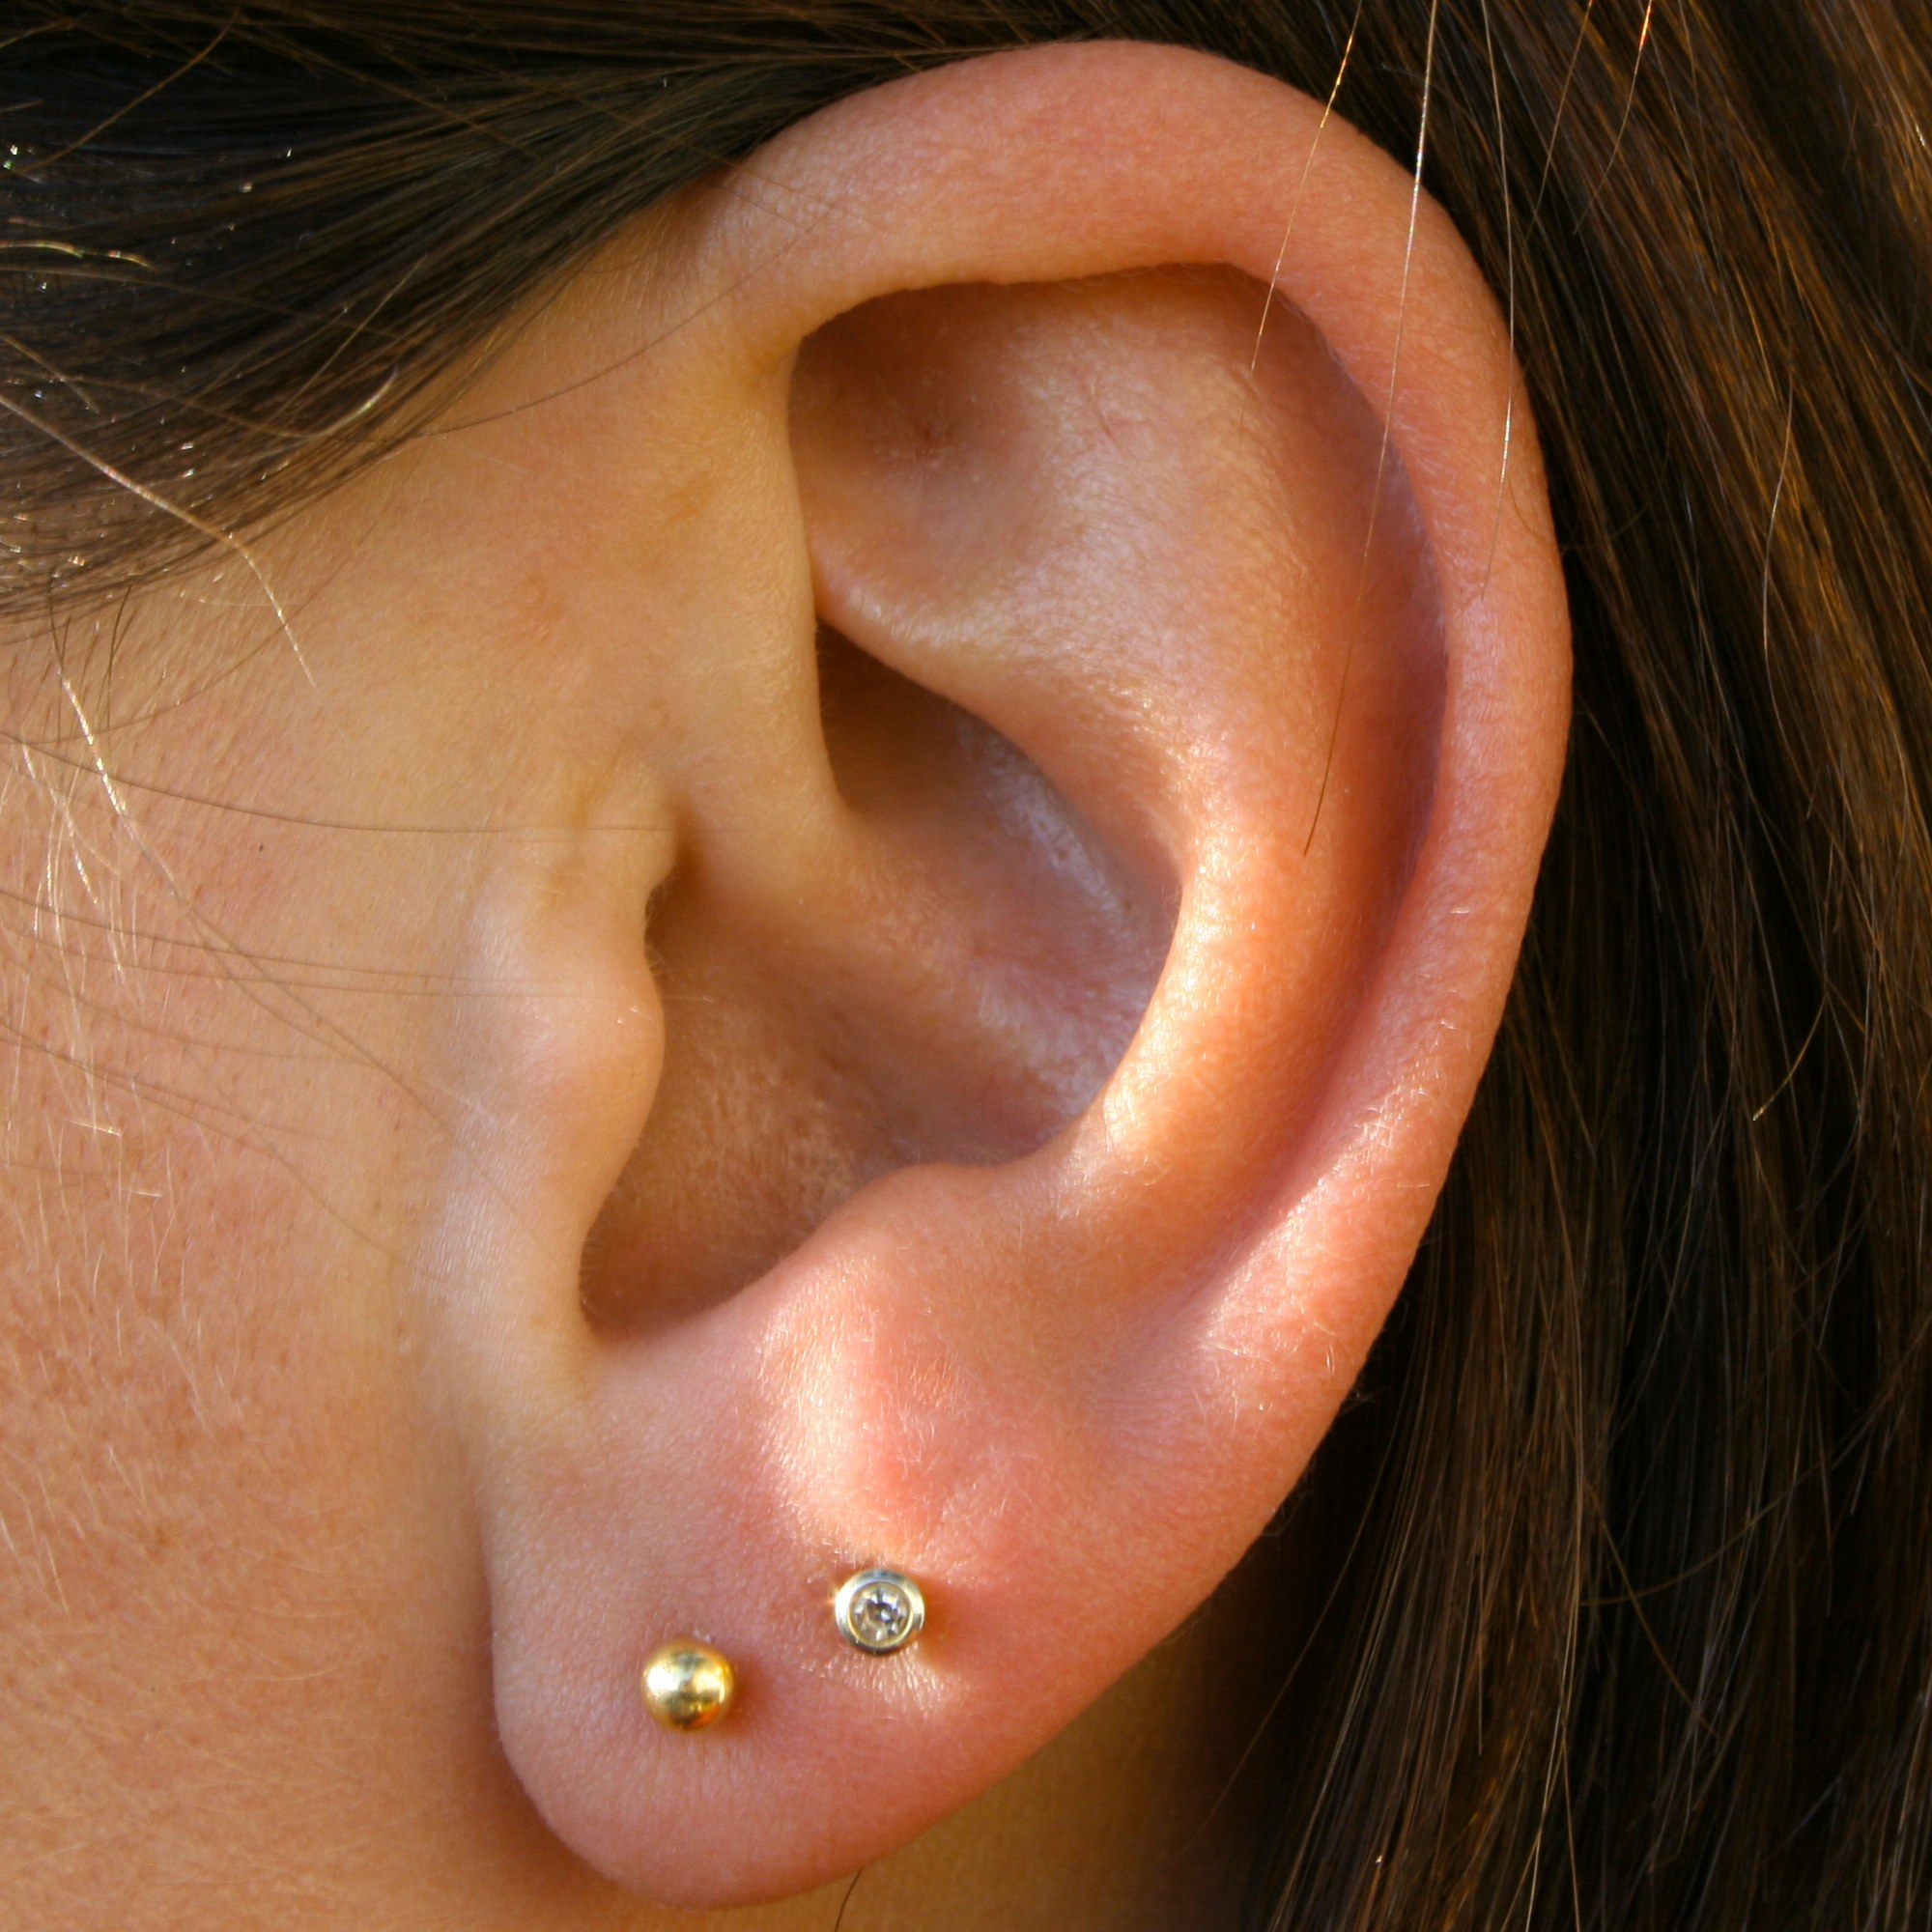 Types of Ear Piercings.